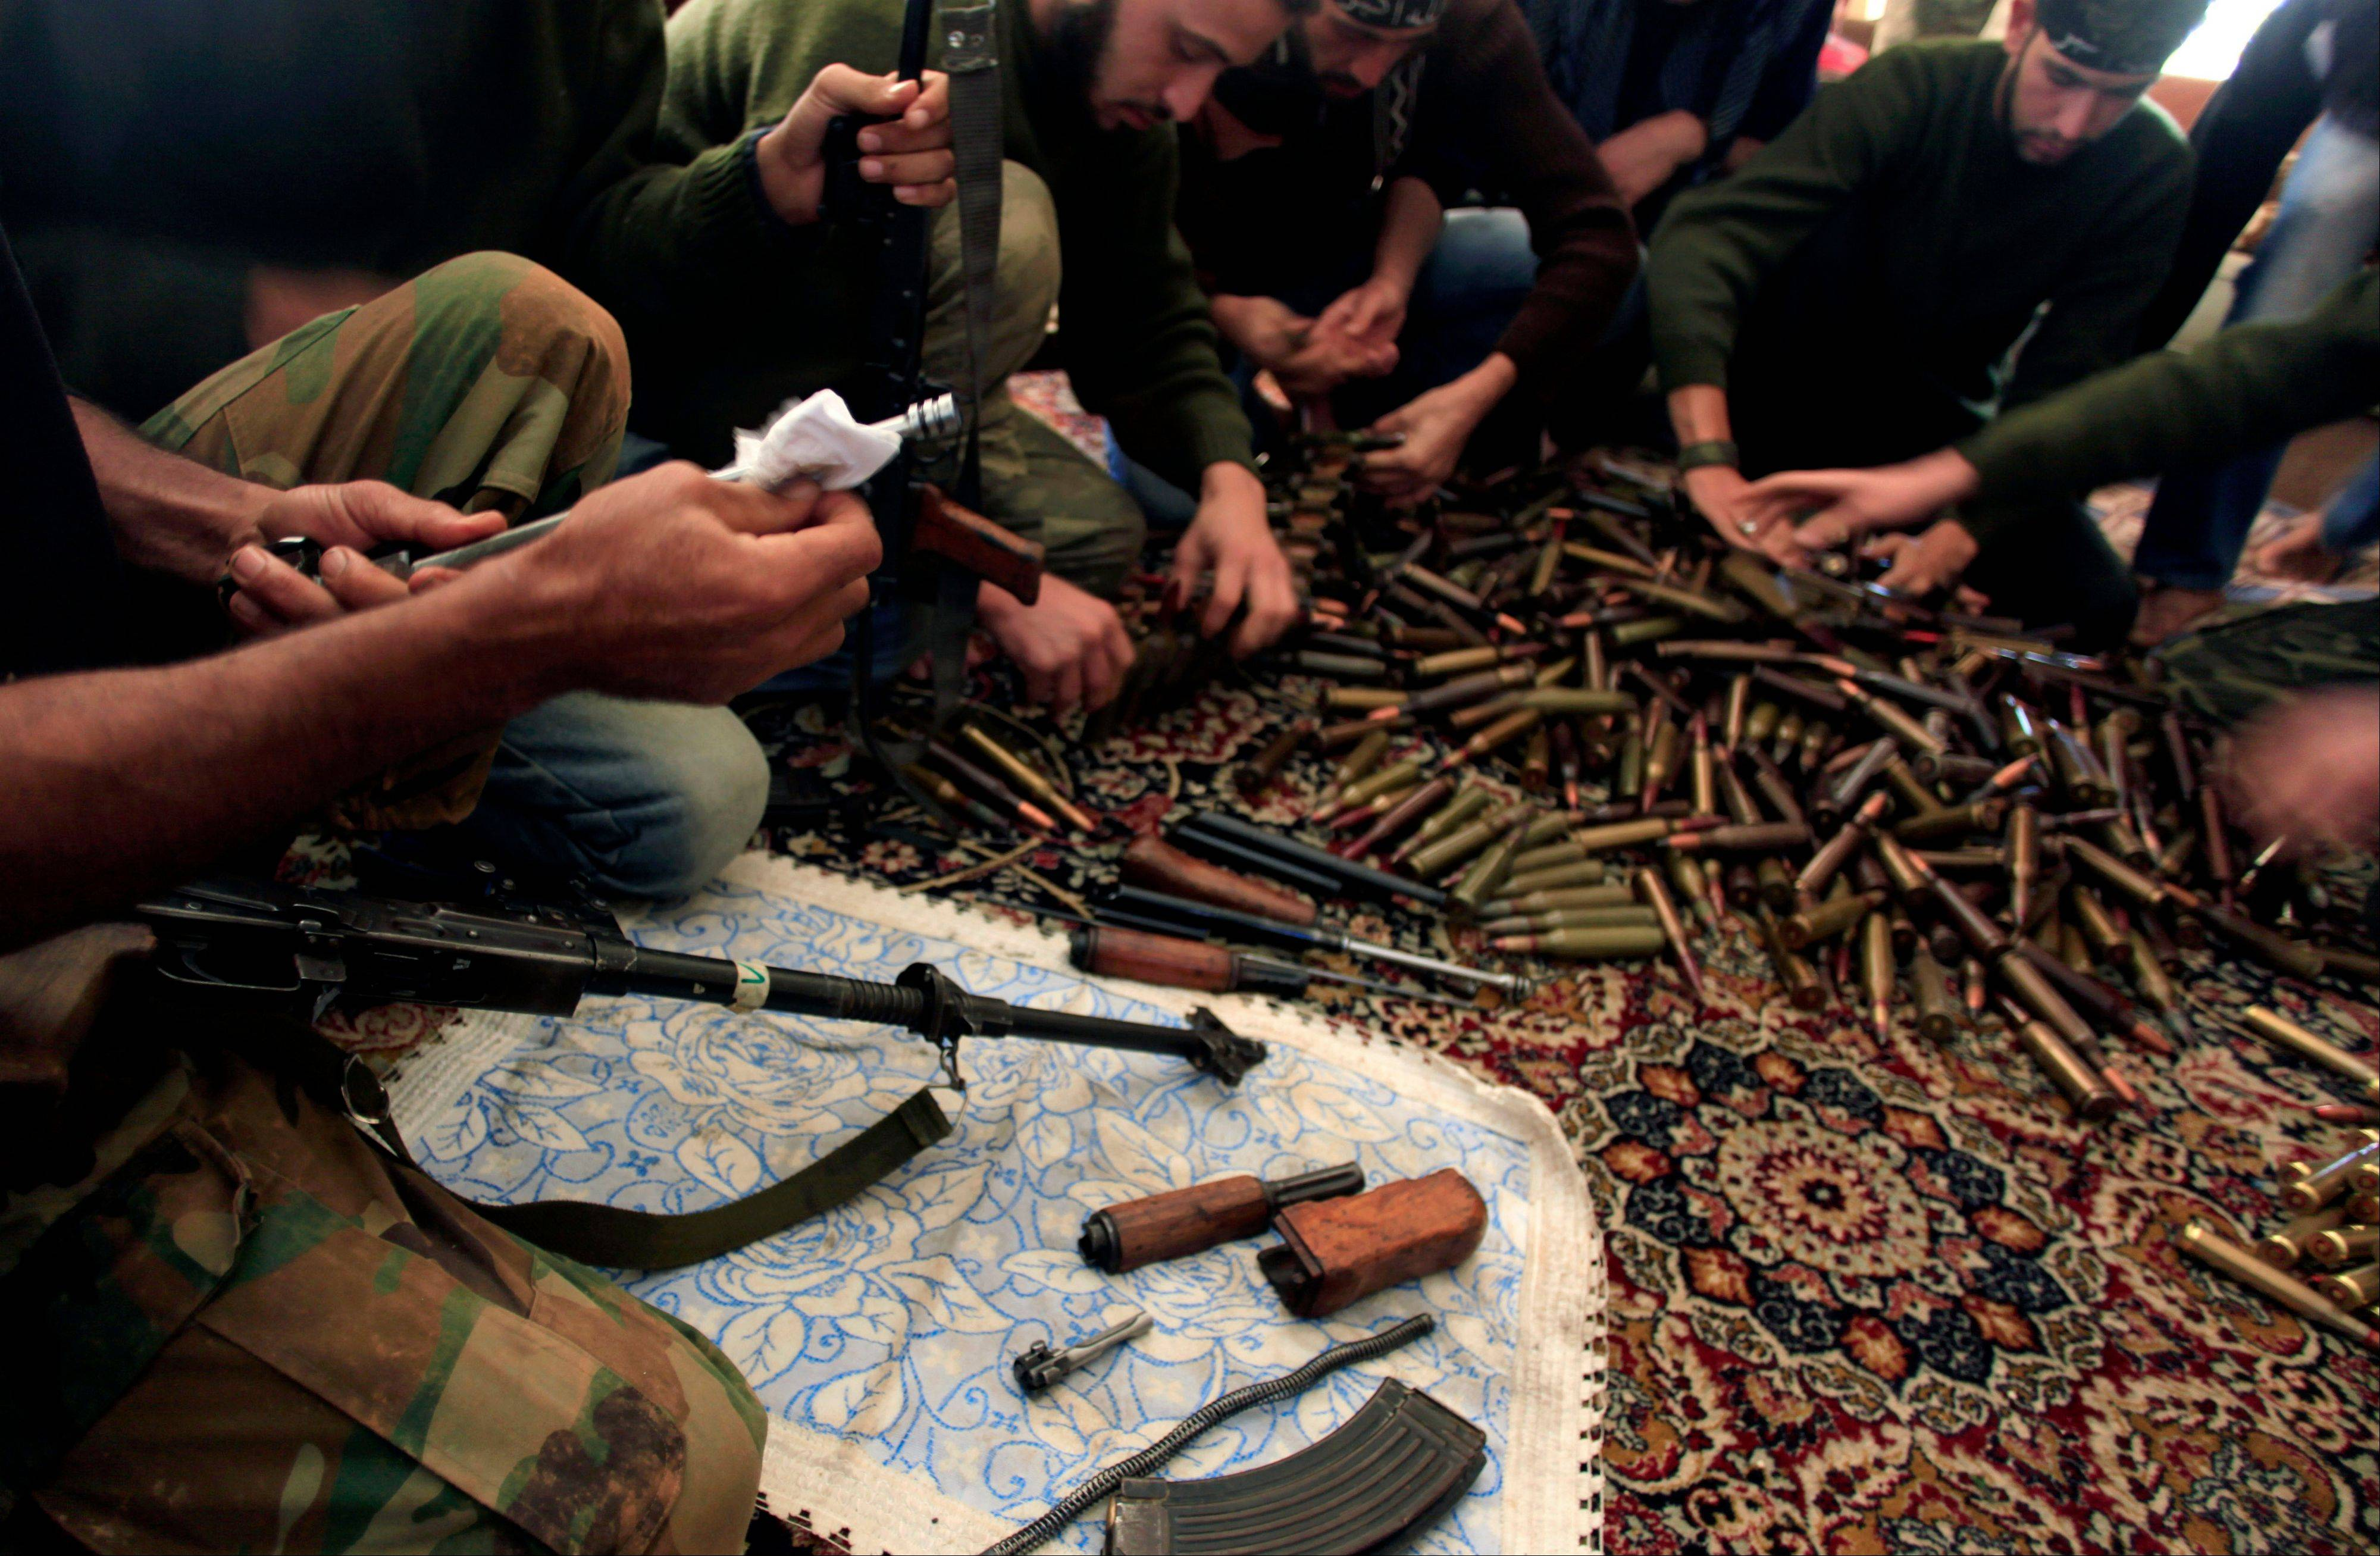 Free Syrian Army fighters clean their weapons and check ammunition at their base on the outskirts of Aleppo, Syria. The crisis over chemical weapons in Syria has underlined a central dilemma for the West as it tries to deal with the country's civil war: the lack of attractive alternatives to President Bashar Assad.